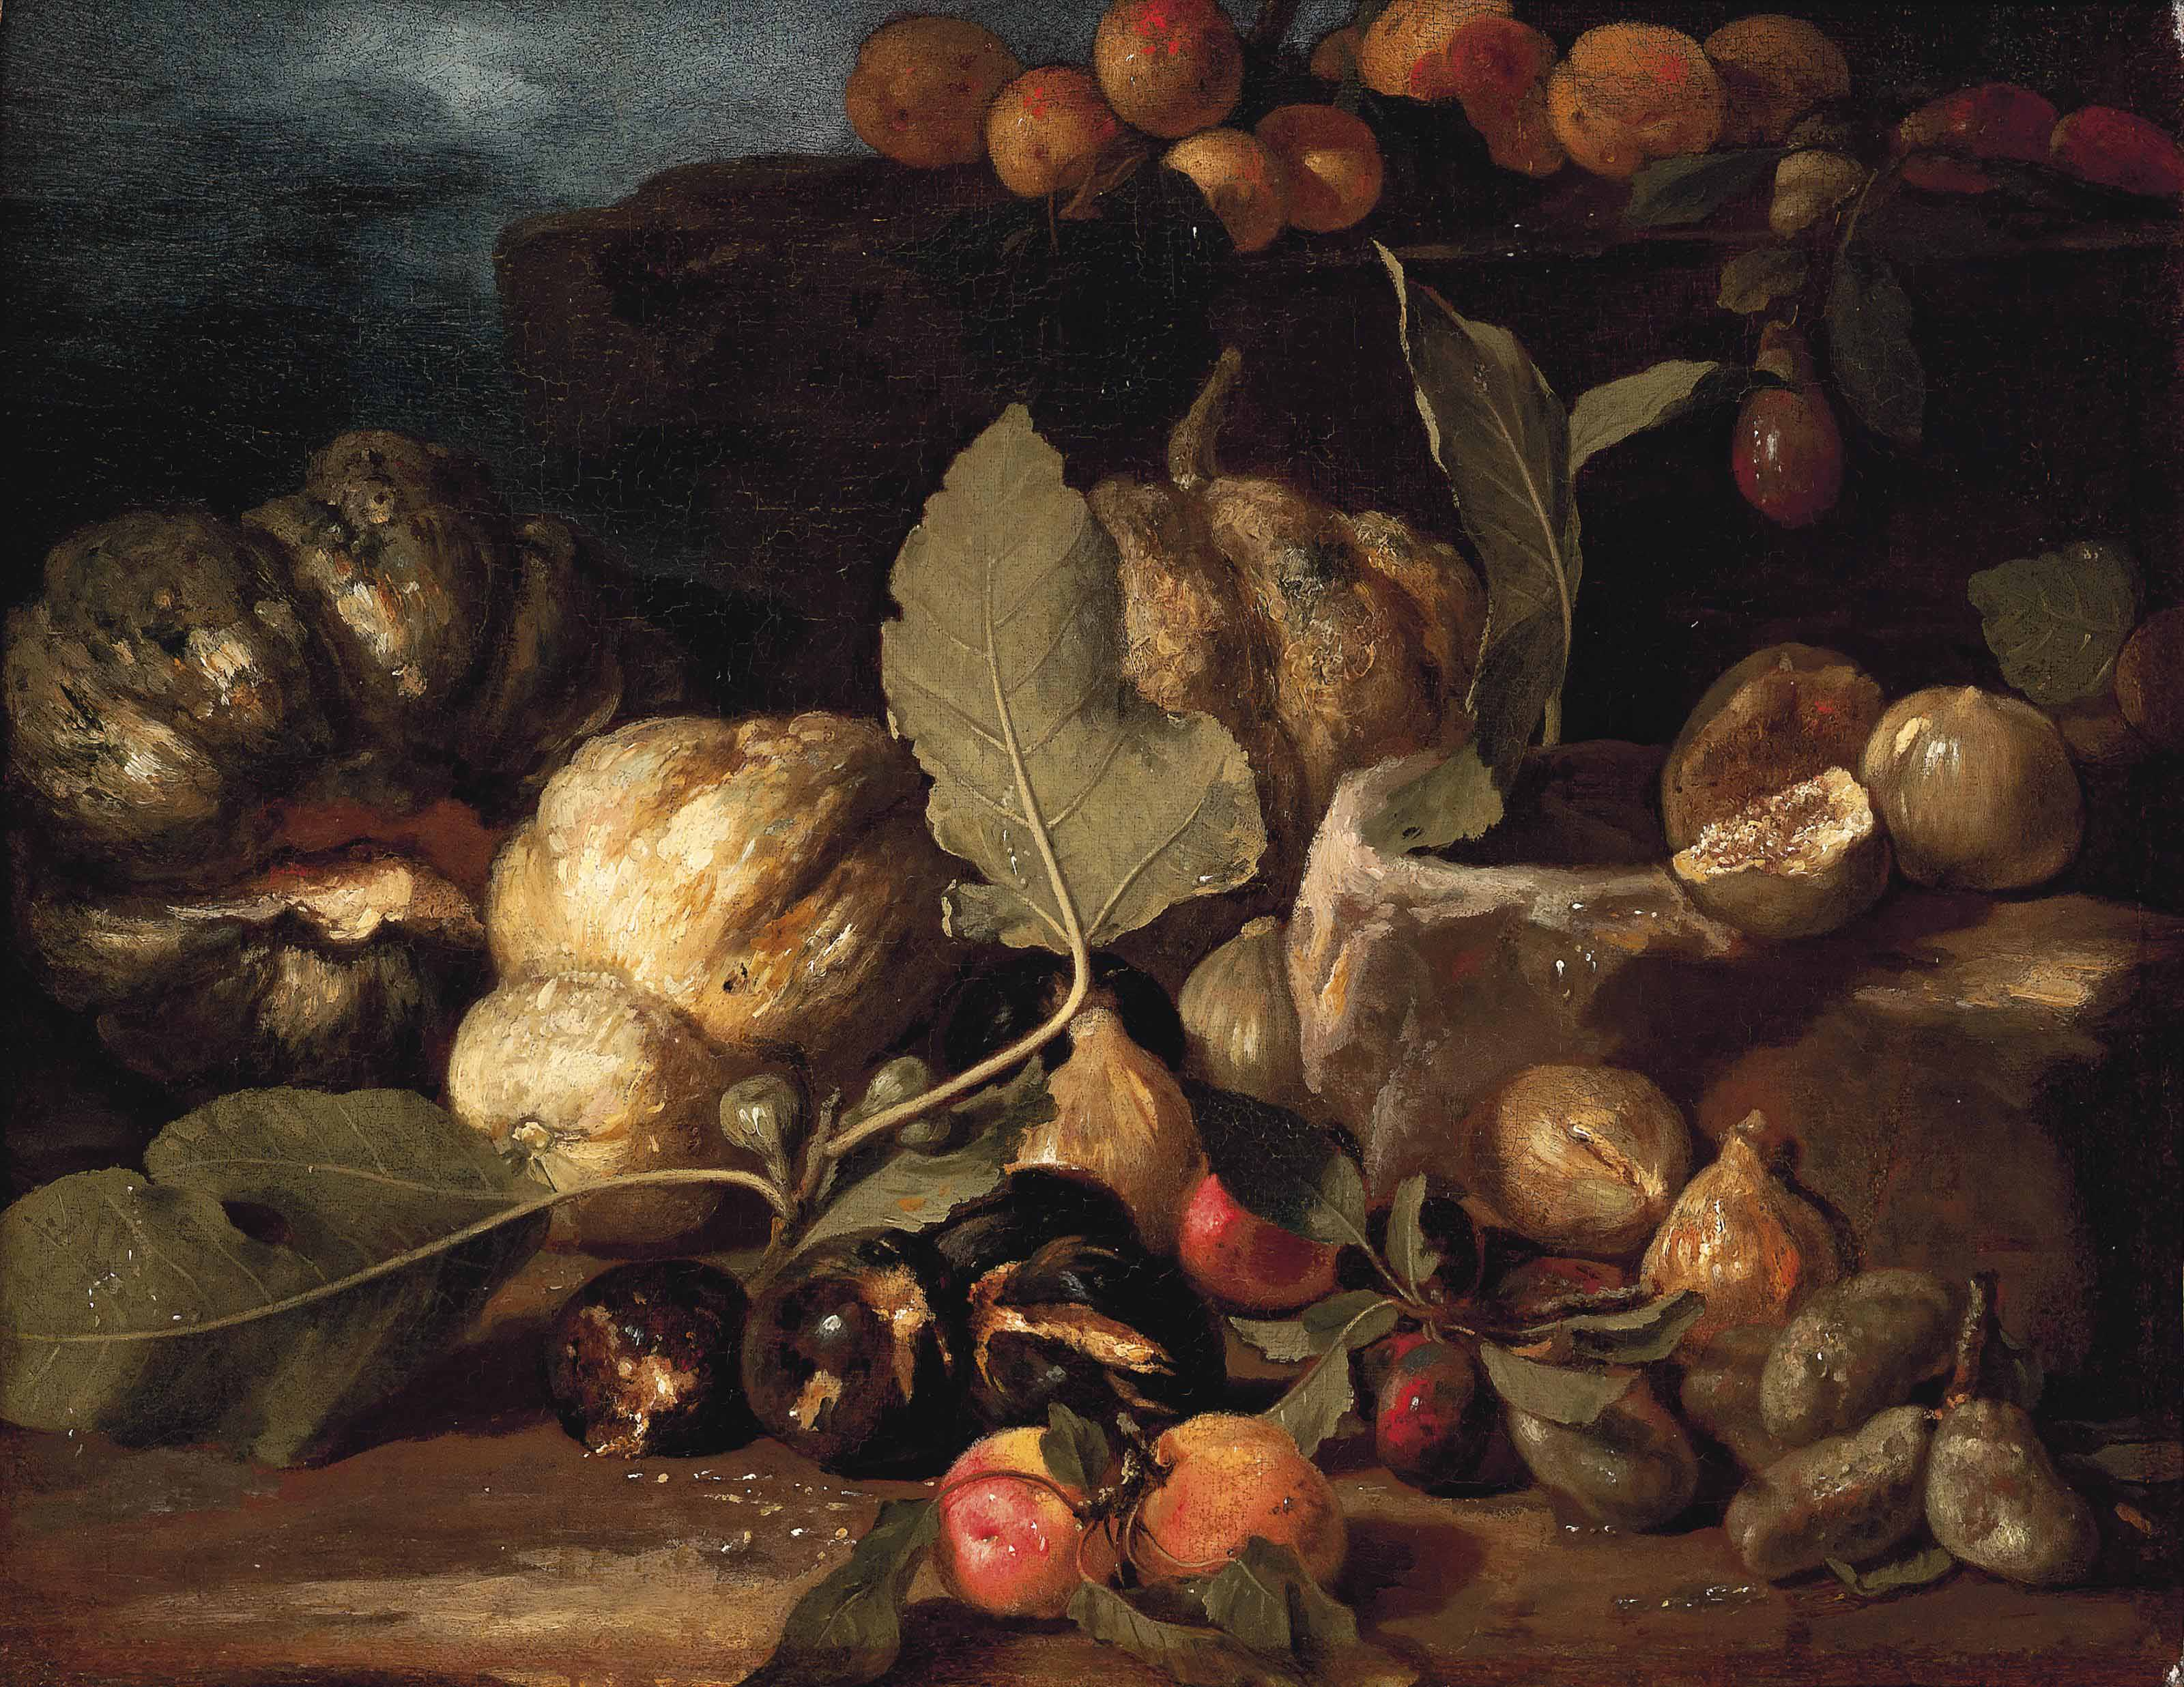 https://www.christies.com/img/LotImages/2014/CSK/2014_CSK_05660_0200_000(roman_school_c_1700_figs_melons_peaches_and_plums_on_a_step_in_a_rocky).jpg